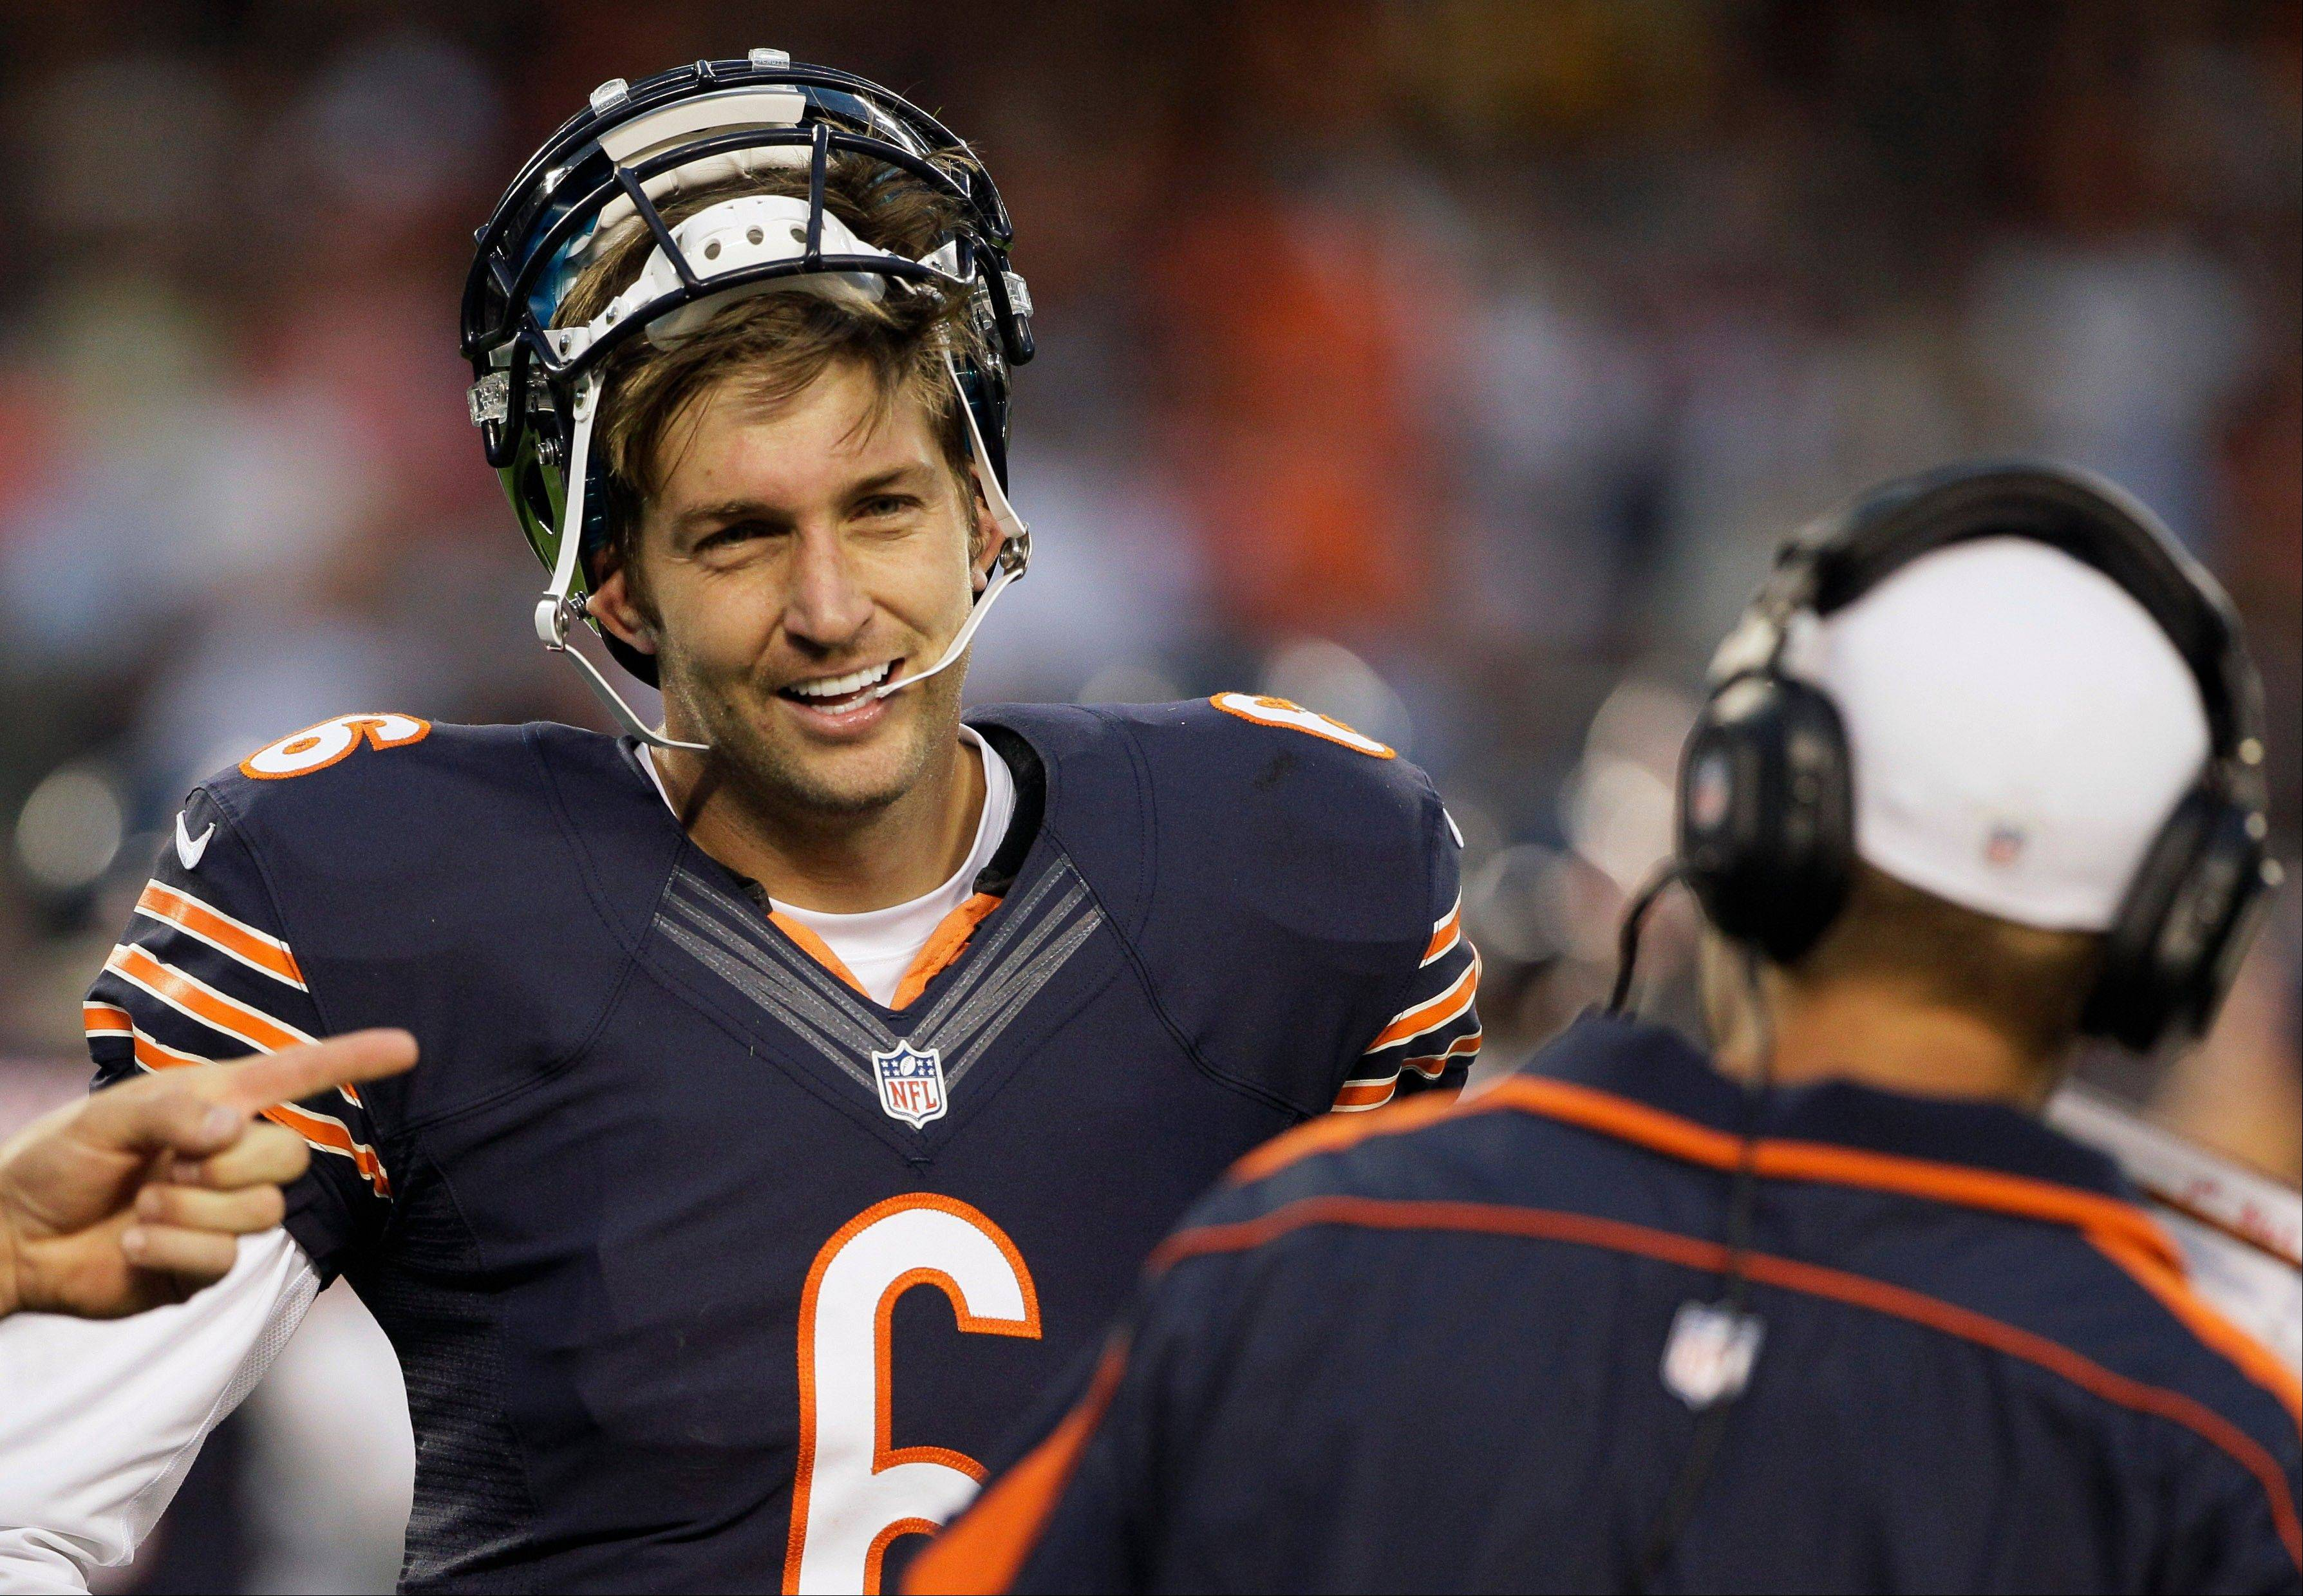 Chicago Bears quarterback Jay Cutler smiles as he talks with quarterbacks coach Jeremy Bates during the first half of an NFL preseason football game against the Washington Redskins in Chicago, Saturday, Aug. 18, 2012.